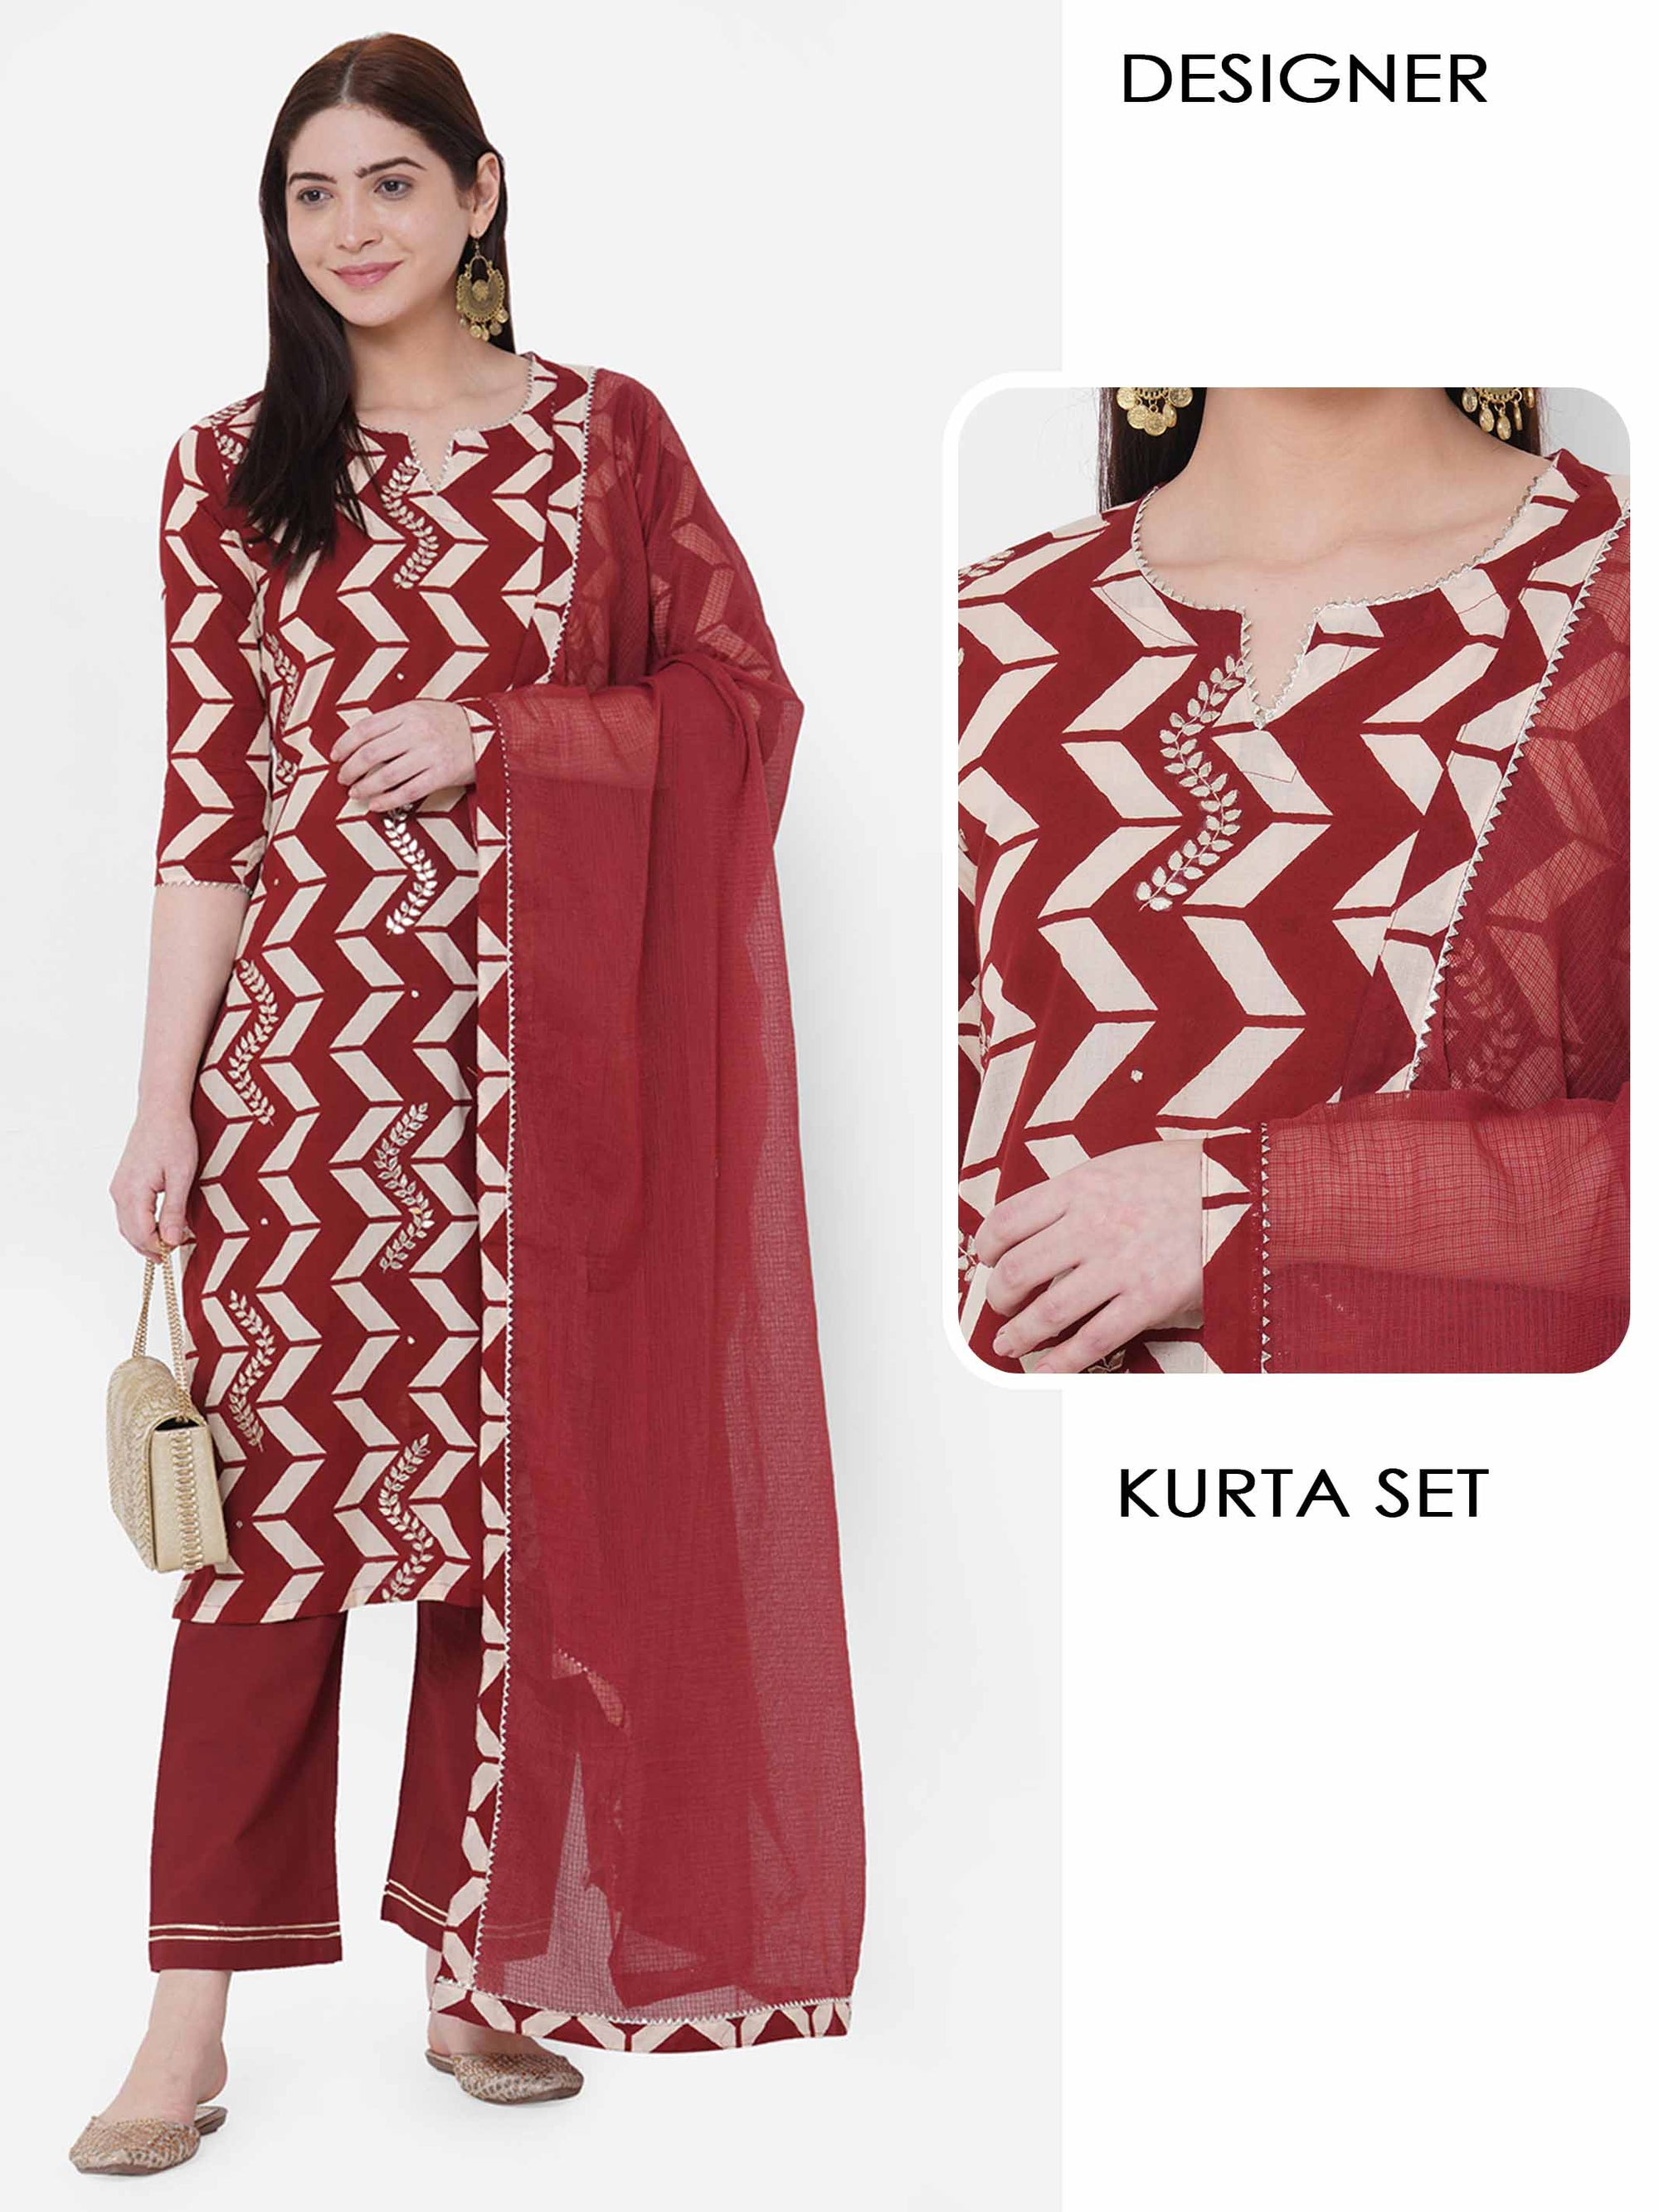 Vertical Chevron Printed & Gota Embellished Kurta with Solid Pant with Solid Dupatta – Maroon